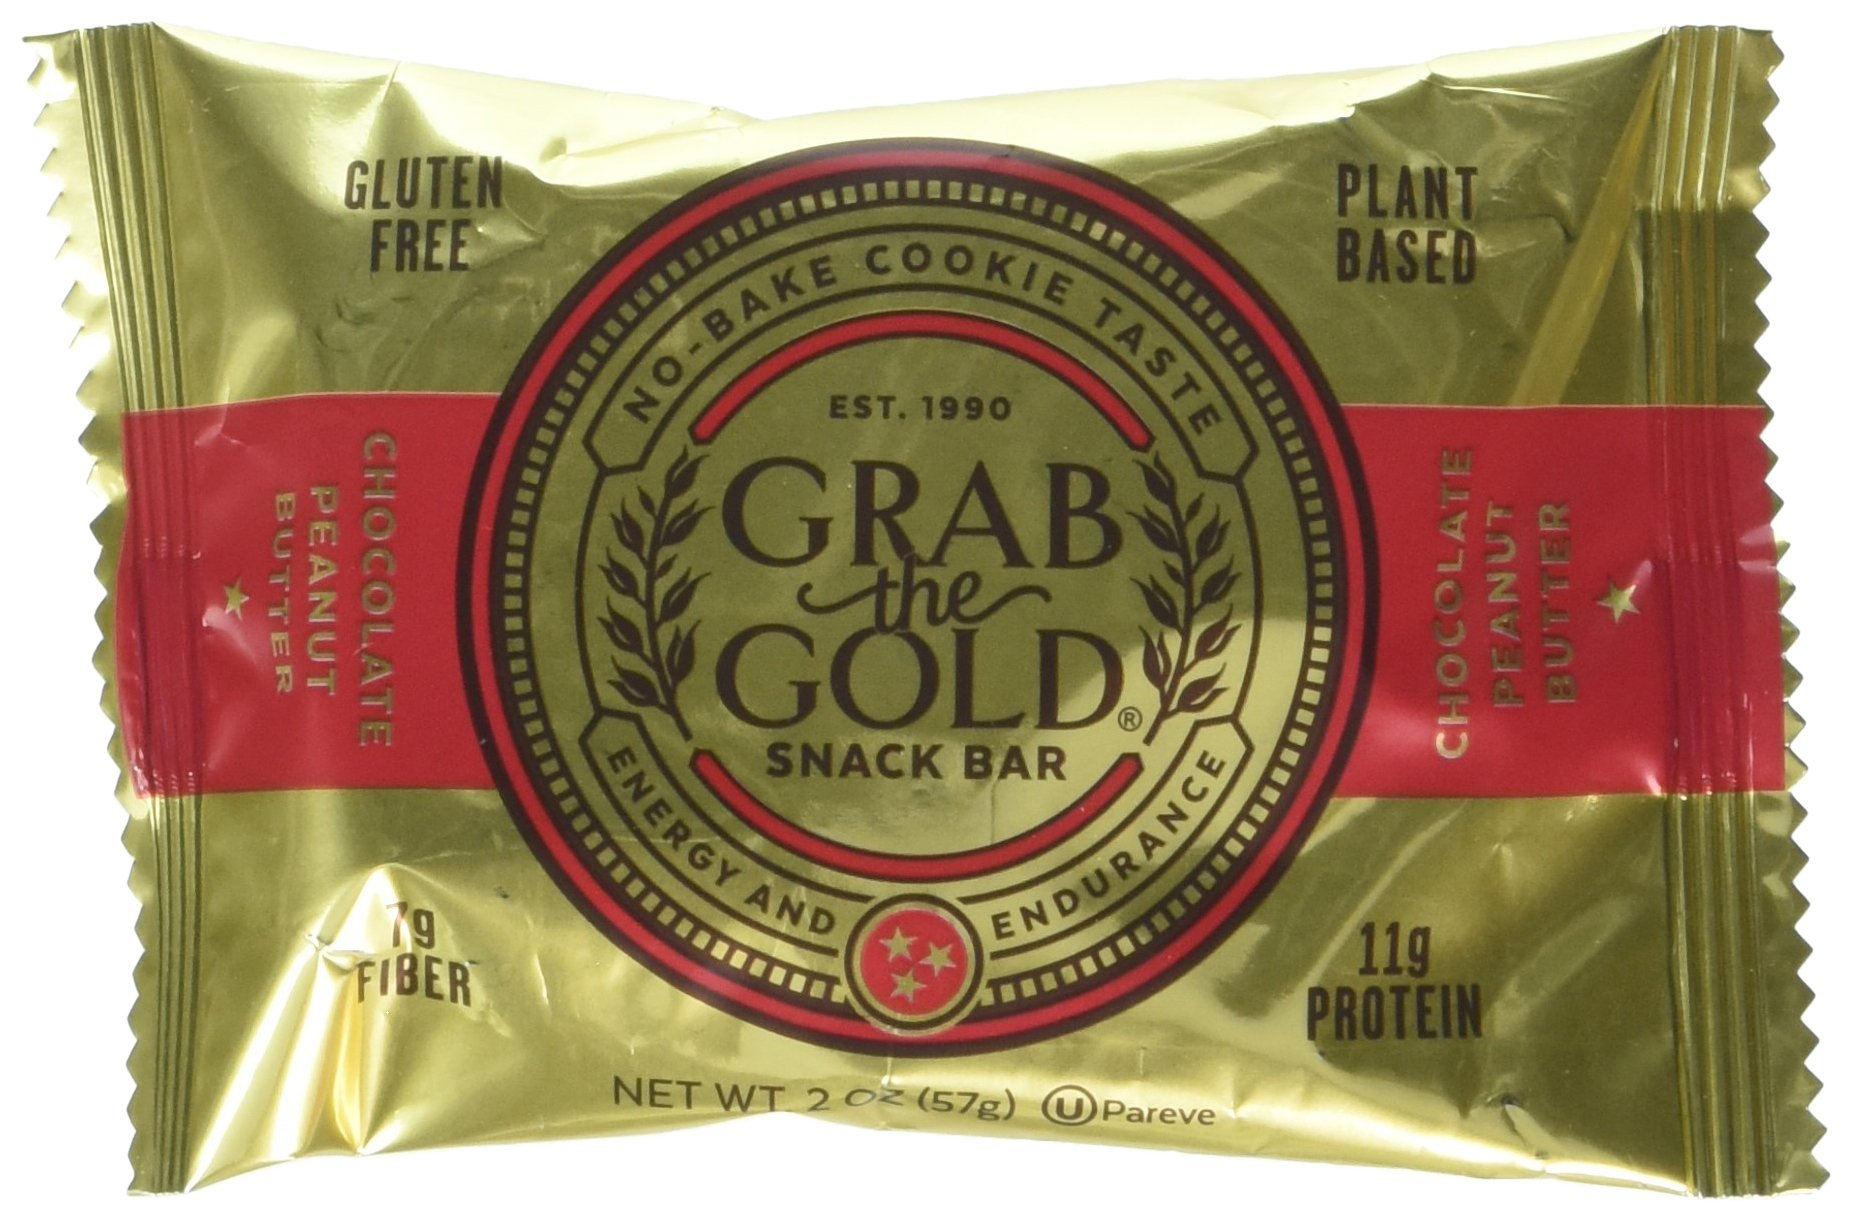 Grab The Gold Gluten Free Snack Bar, Chocolate Peanut Butter, 12 Count